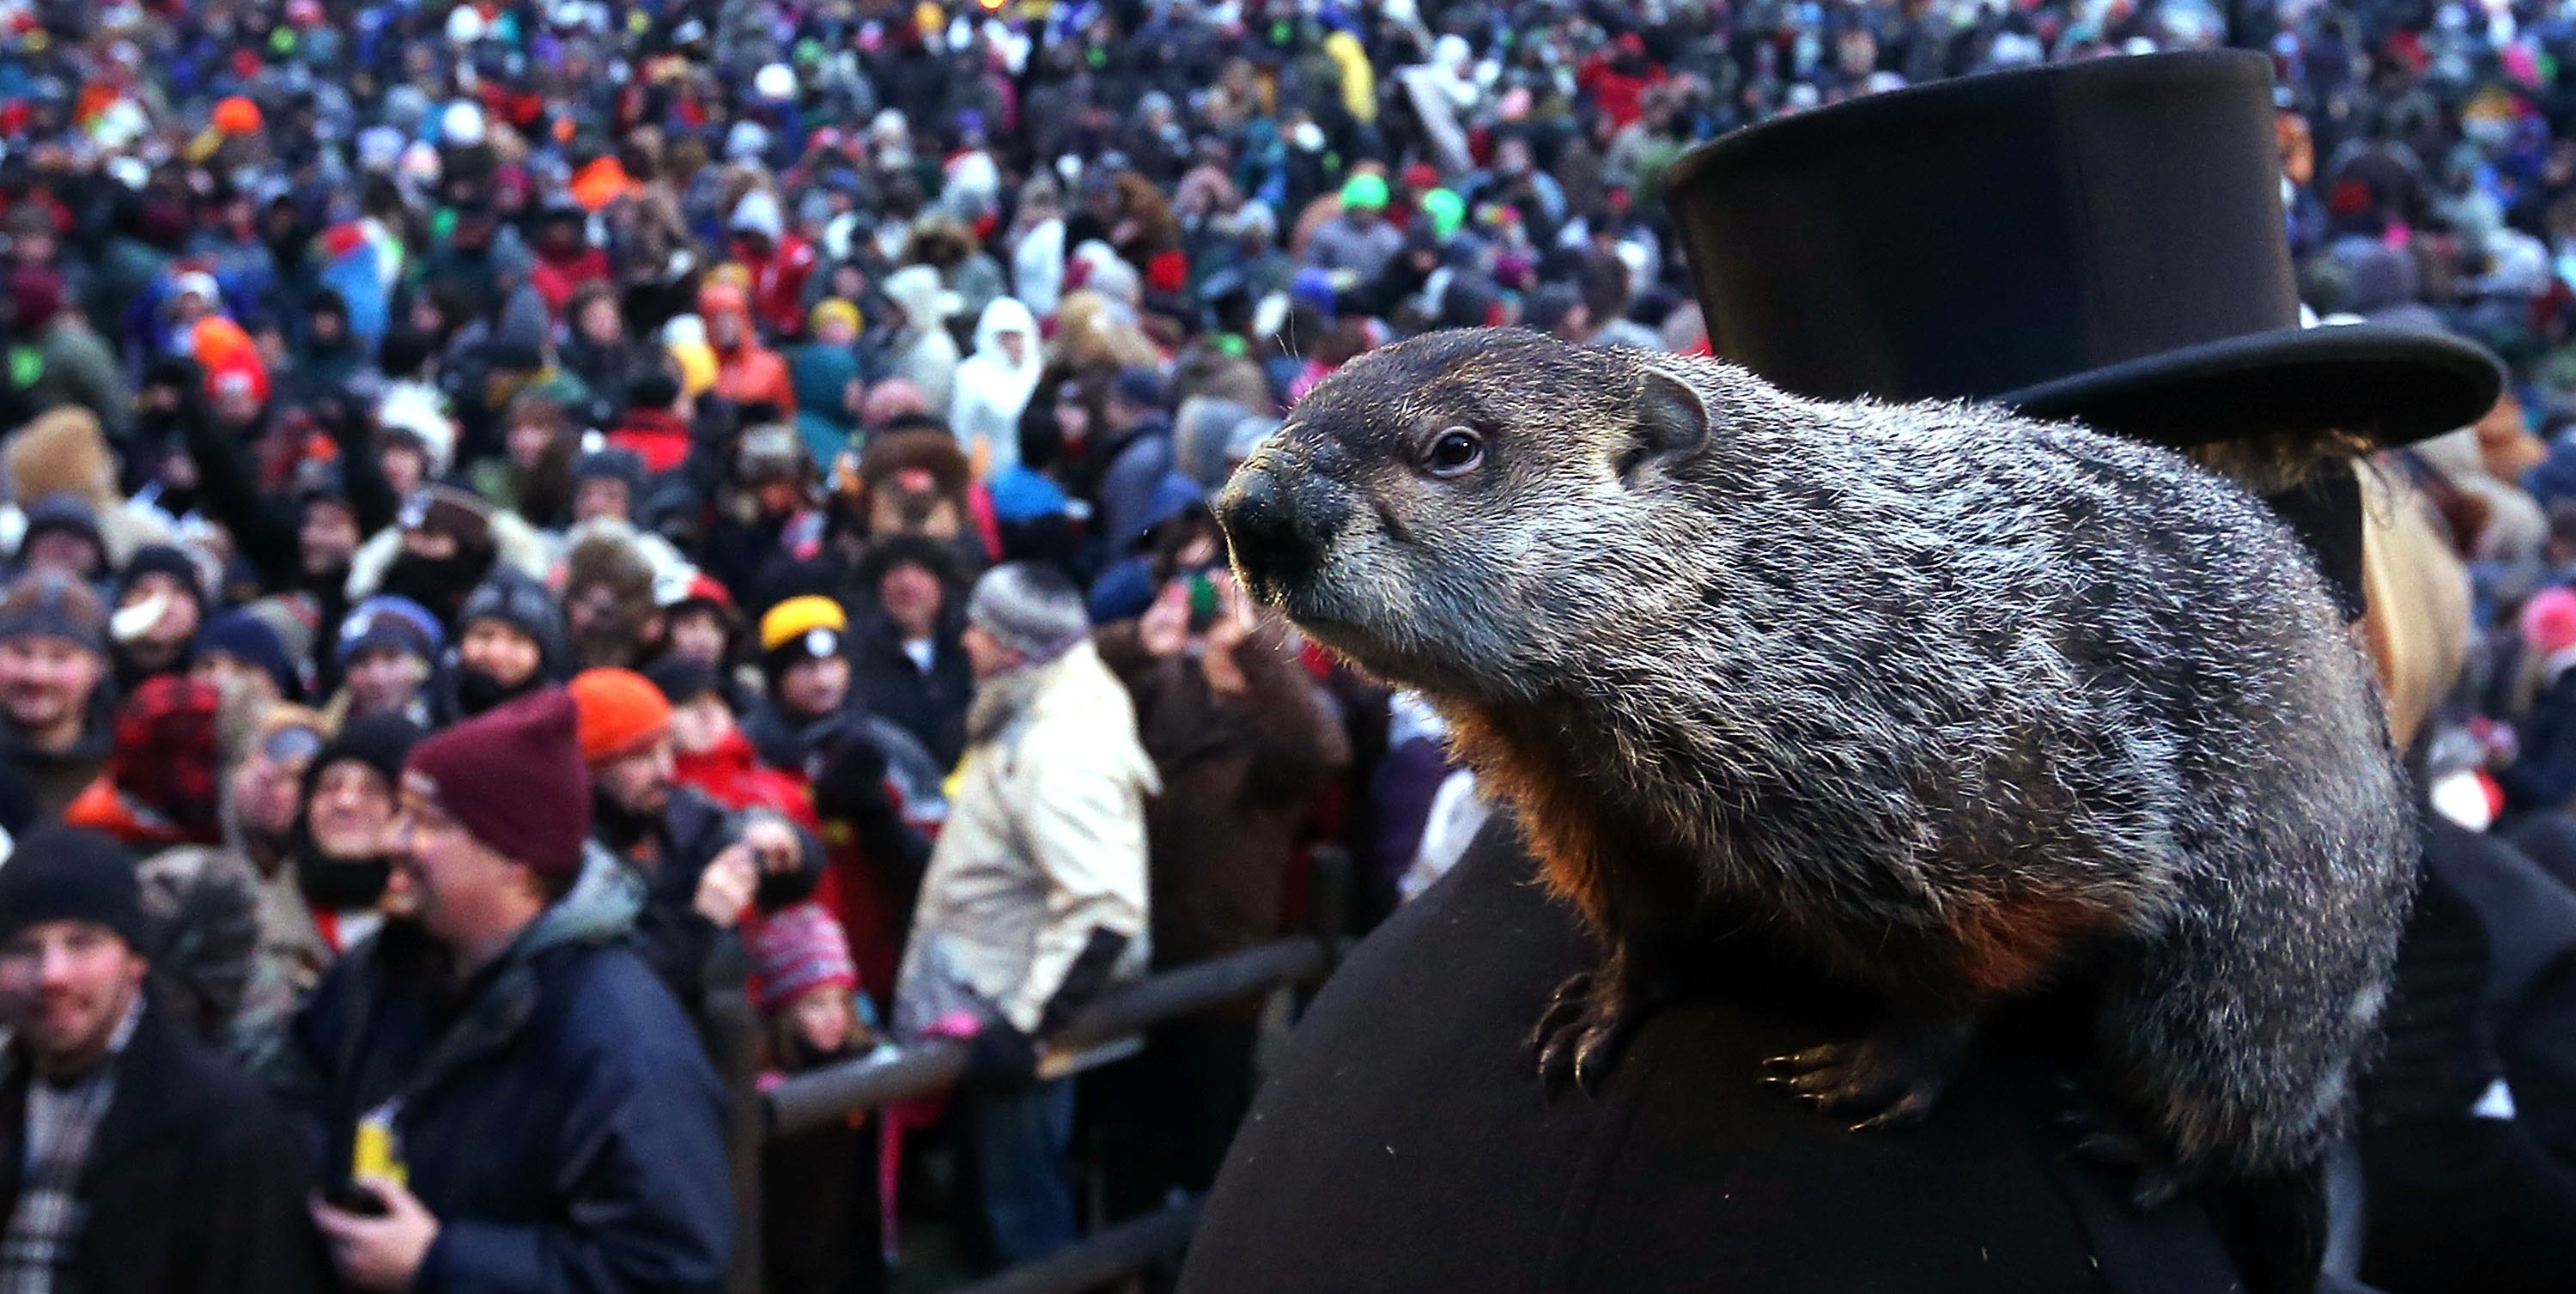 The Weird Way Groundhog Day (and Punxsutawney Phil!) Came to America